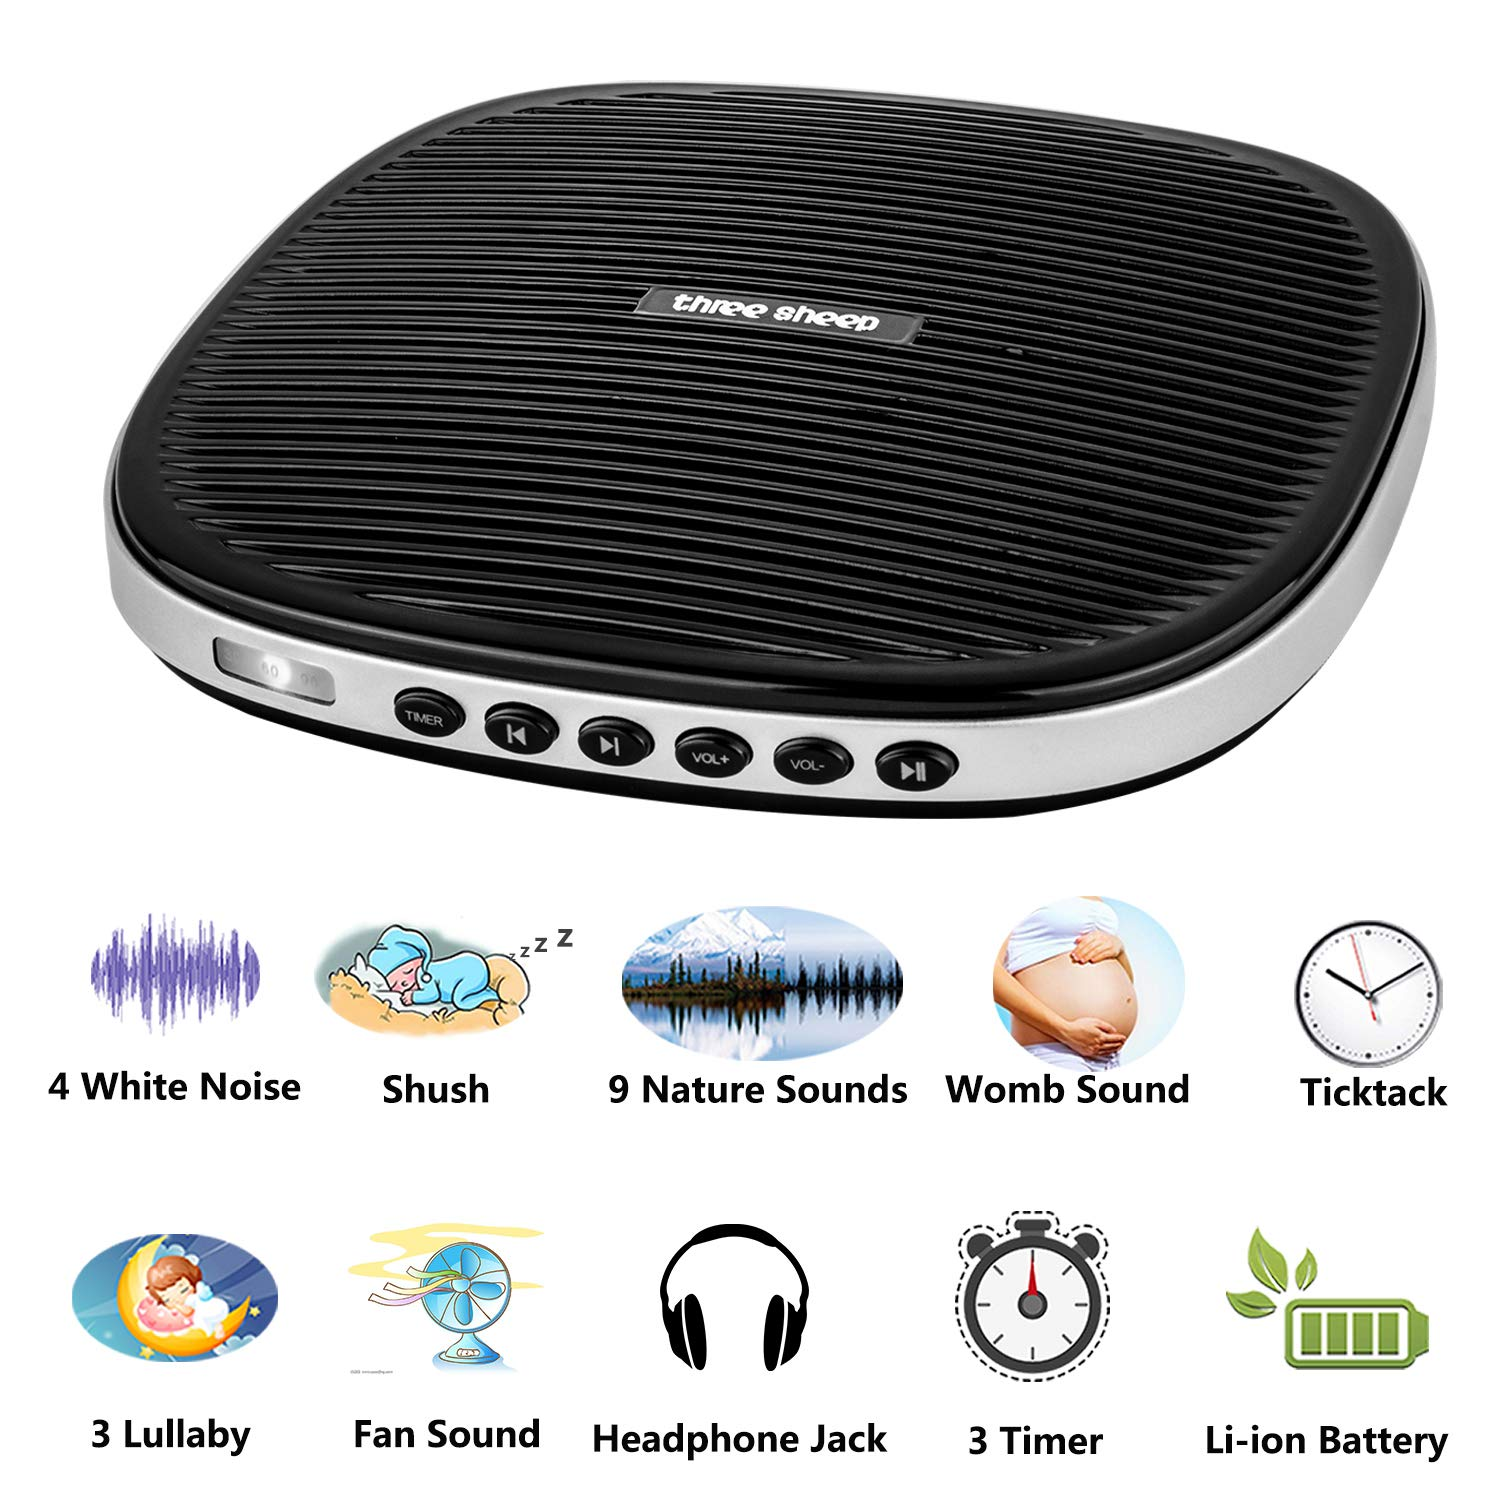 Three sheep White Noise Machine, Baby Sleep Sound Machine with 20 Soothing Sounds, Sleep Timer, Headphone Jack, Rechargeable and USB Socket for Adult and Children at Home, Office and Travel